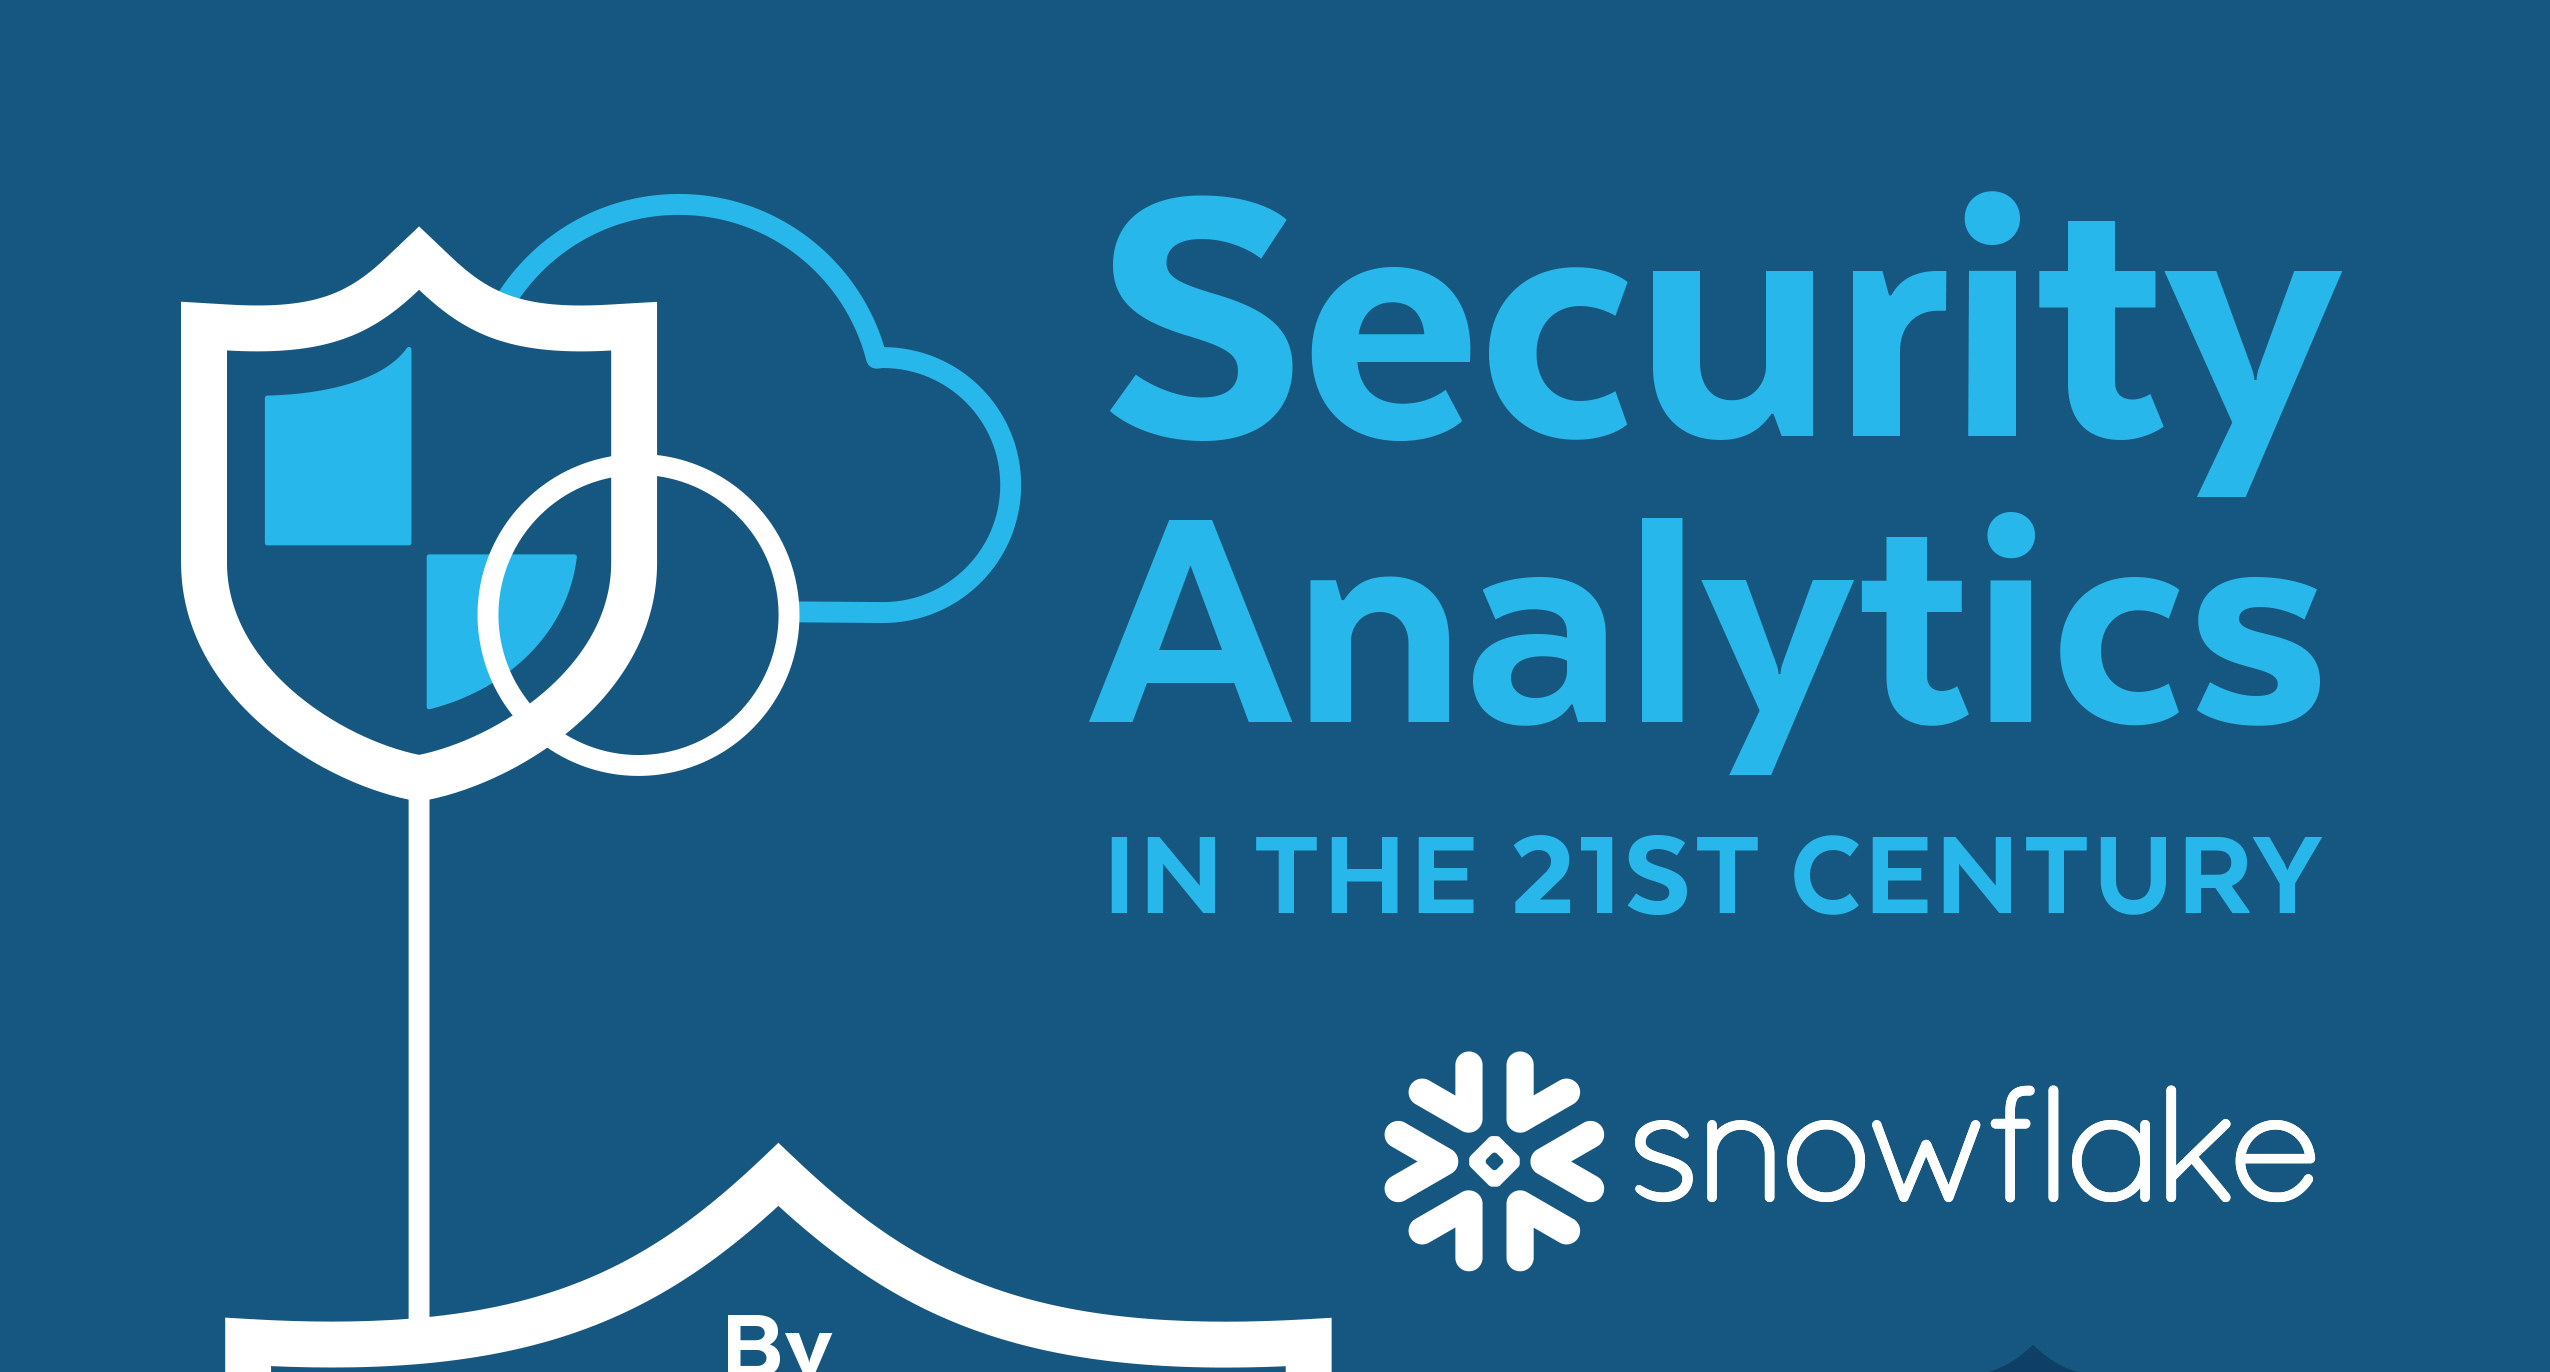 Secure analytics in 2021 and beyond